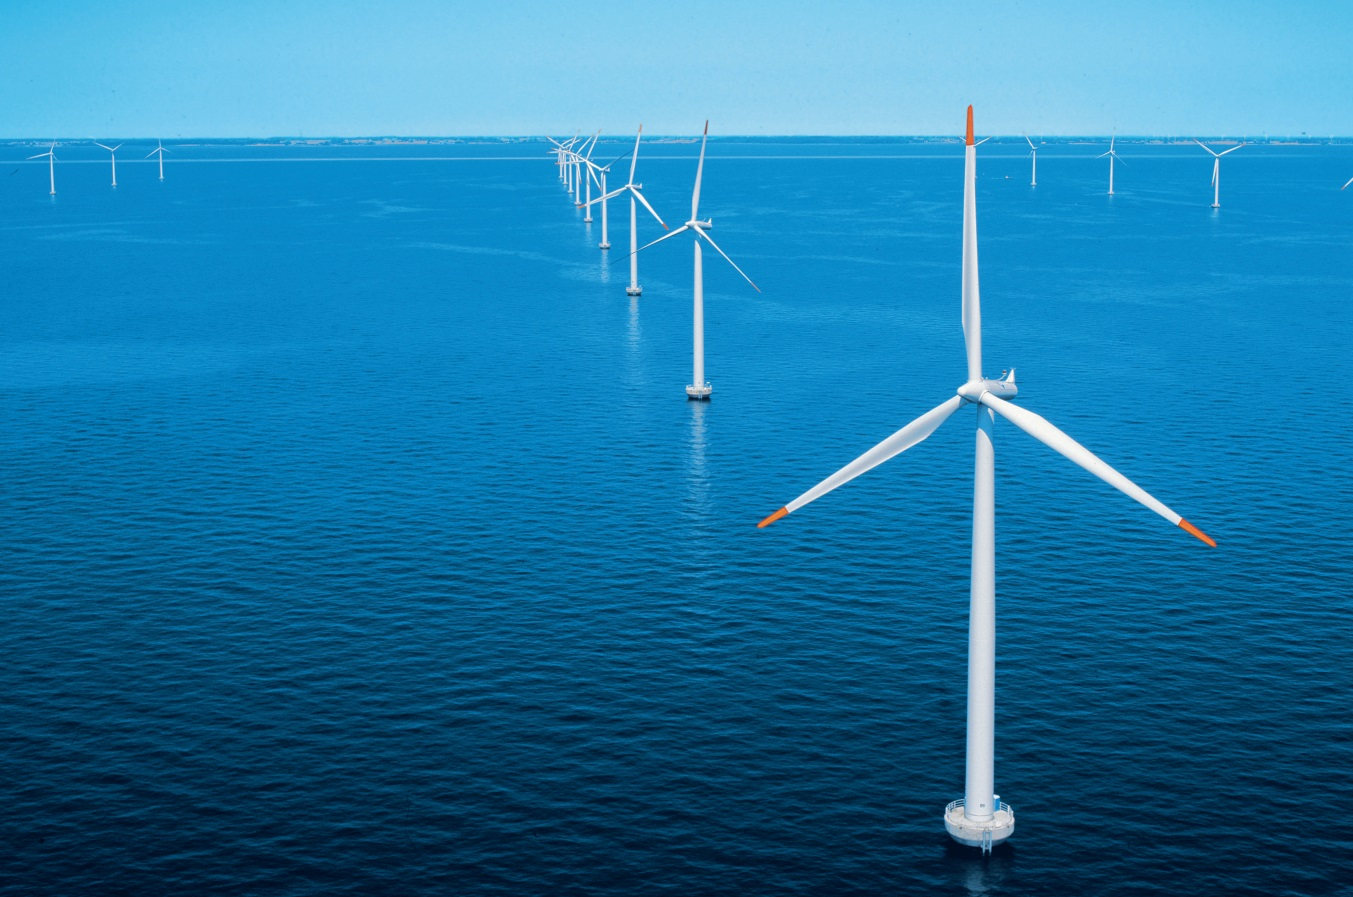 An artist's impression of the Neart na Gaoithe windfarm off the east coast.